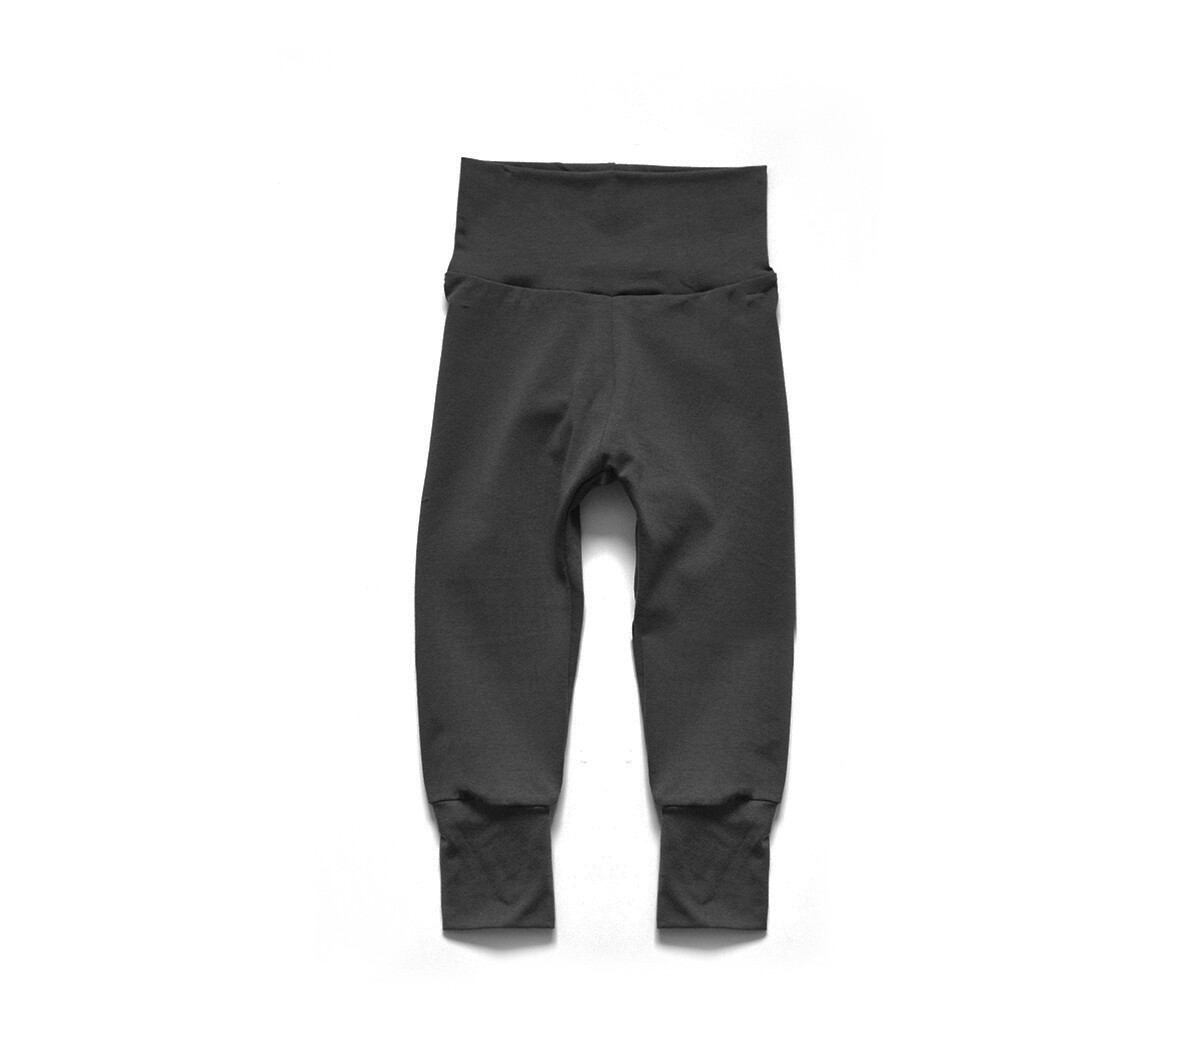 Little Sprout Pants™ in Slate | Grow With Me Leggings - Cotton